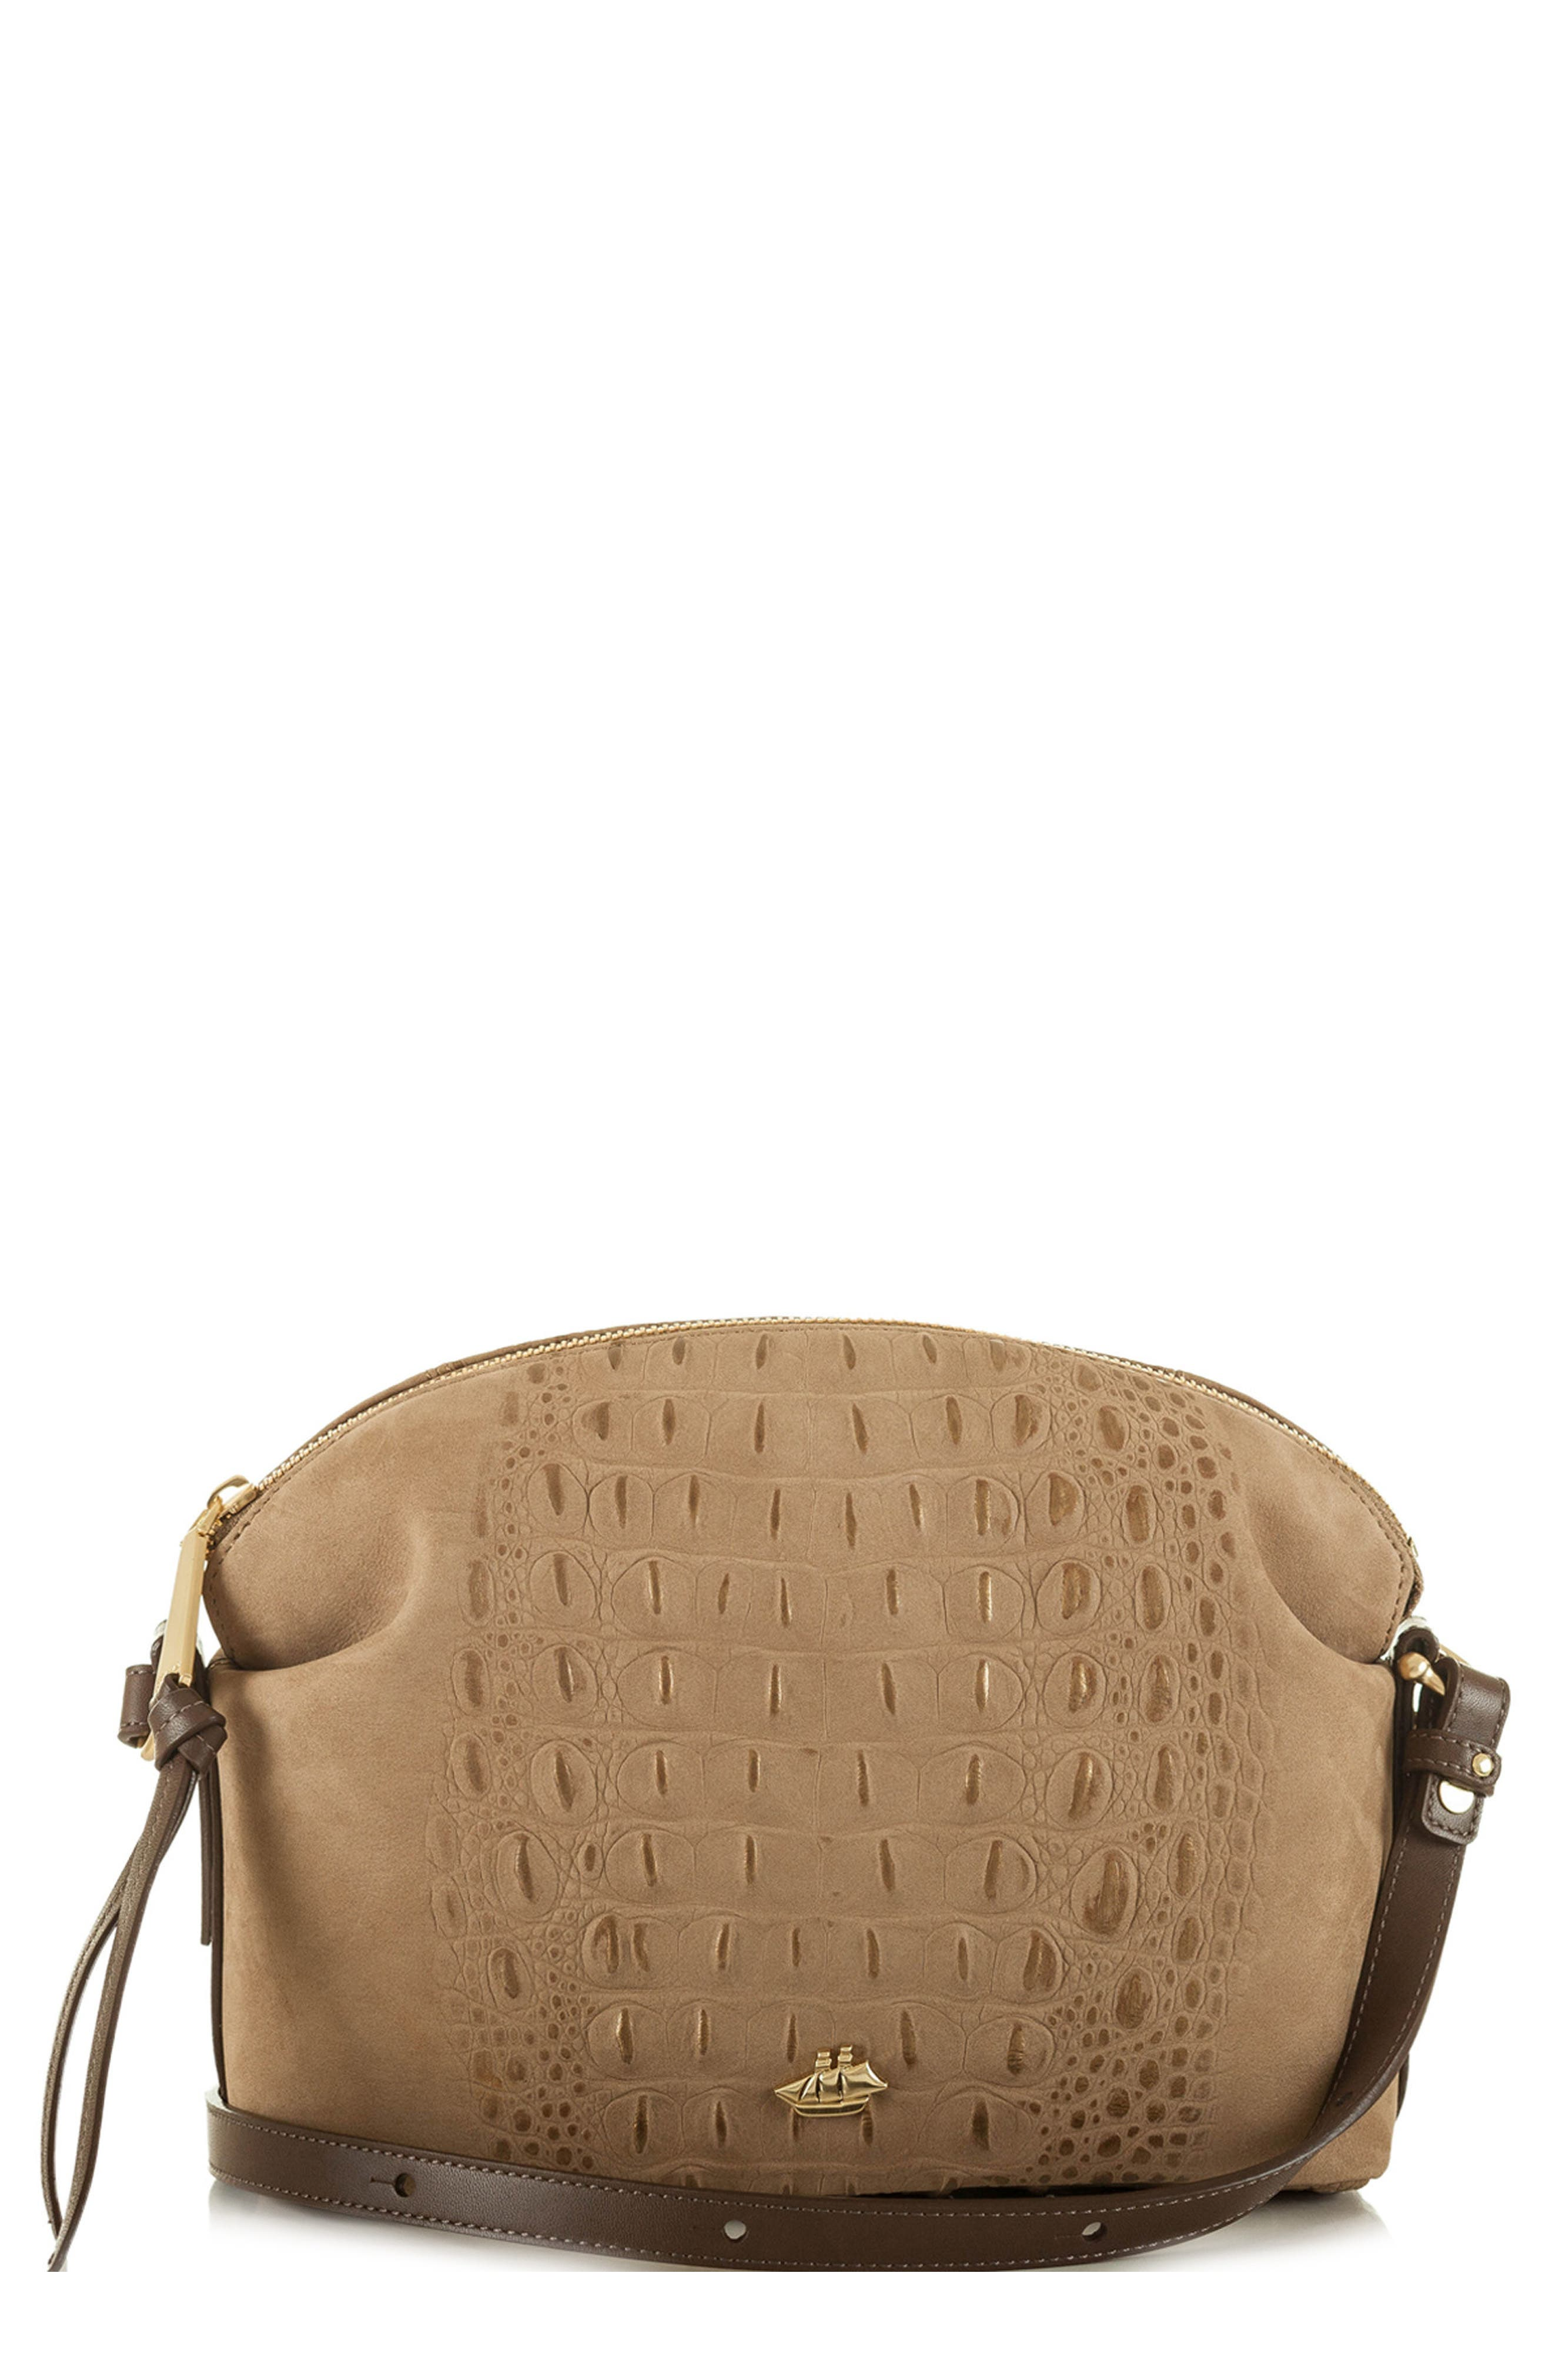 Southcast Haley Metallic Croc Embossed Leather Crossbody Bag,                         Main,                         color, Gold